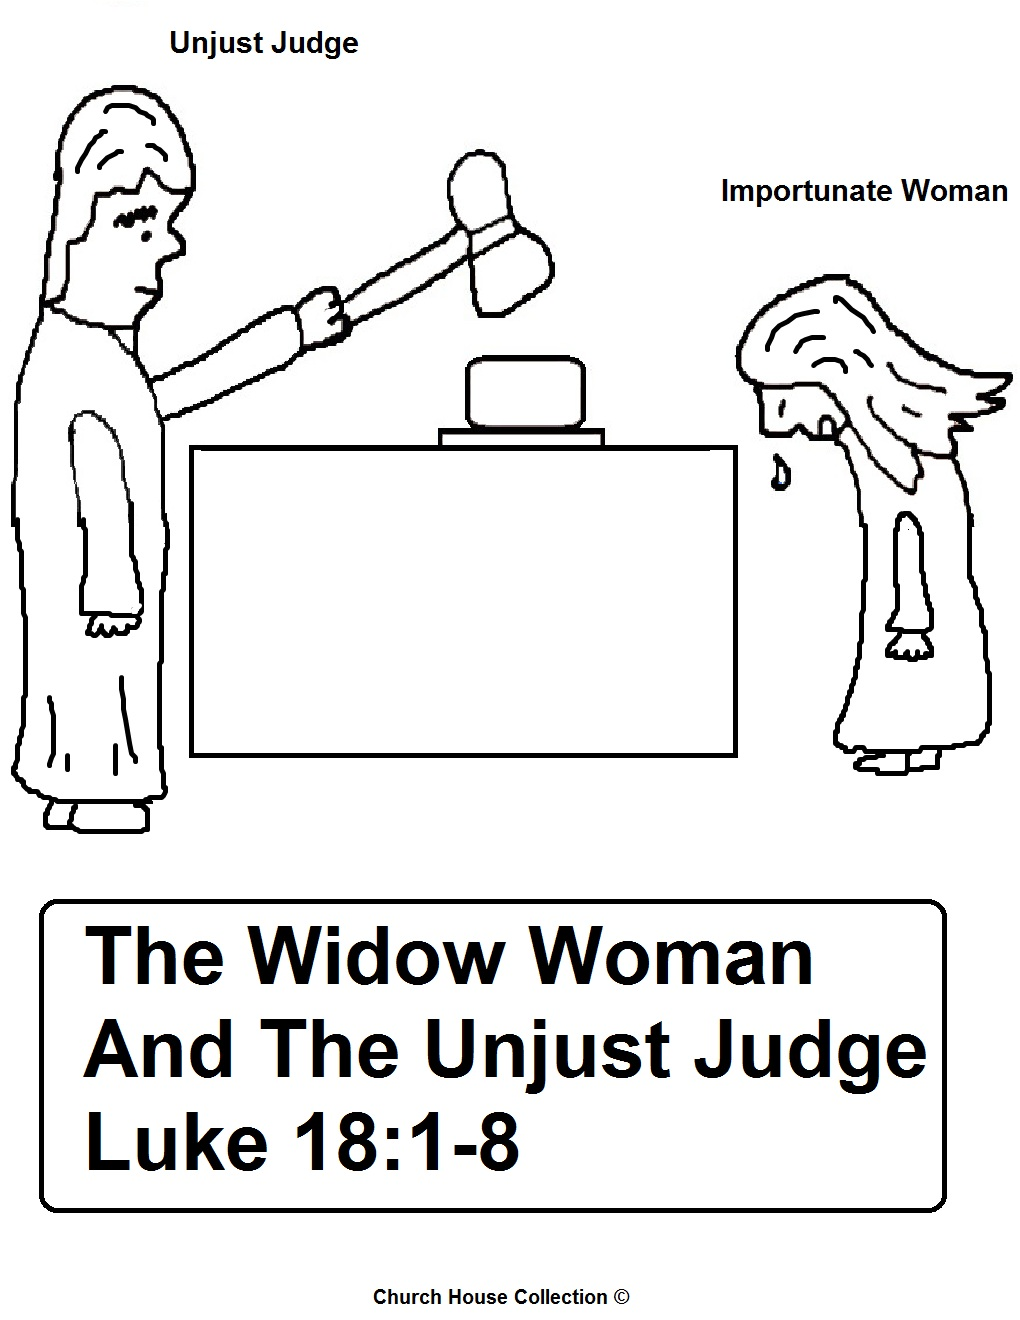 Parable Of The Importunate Woman and Unjust Judge